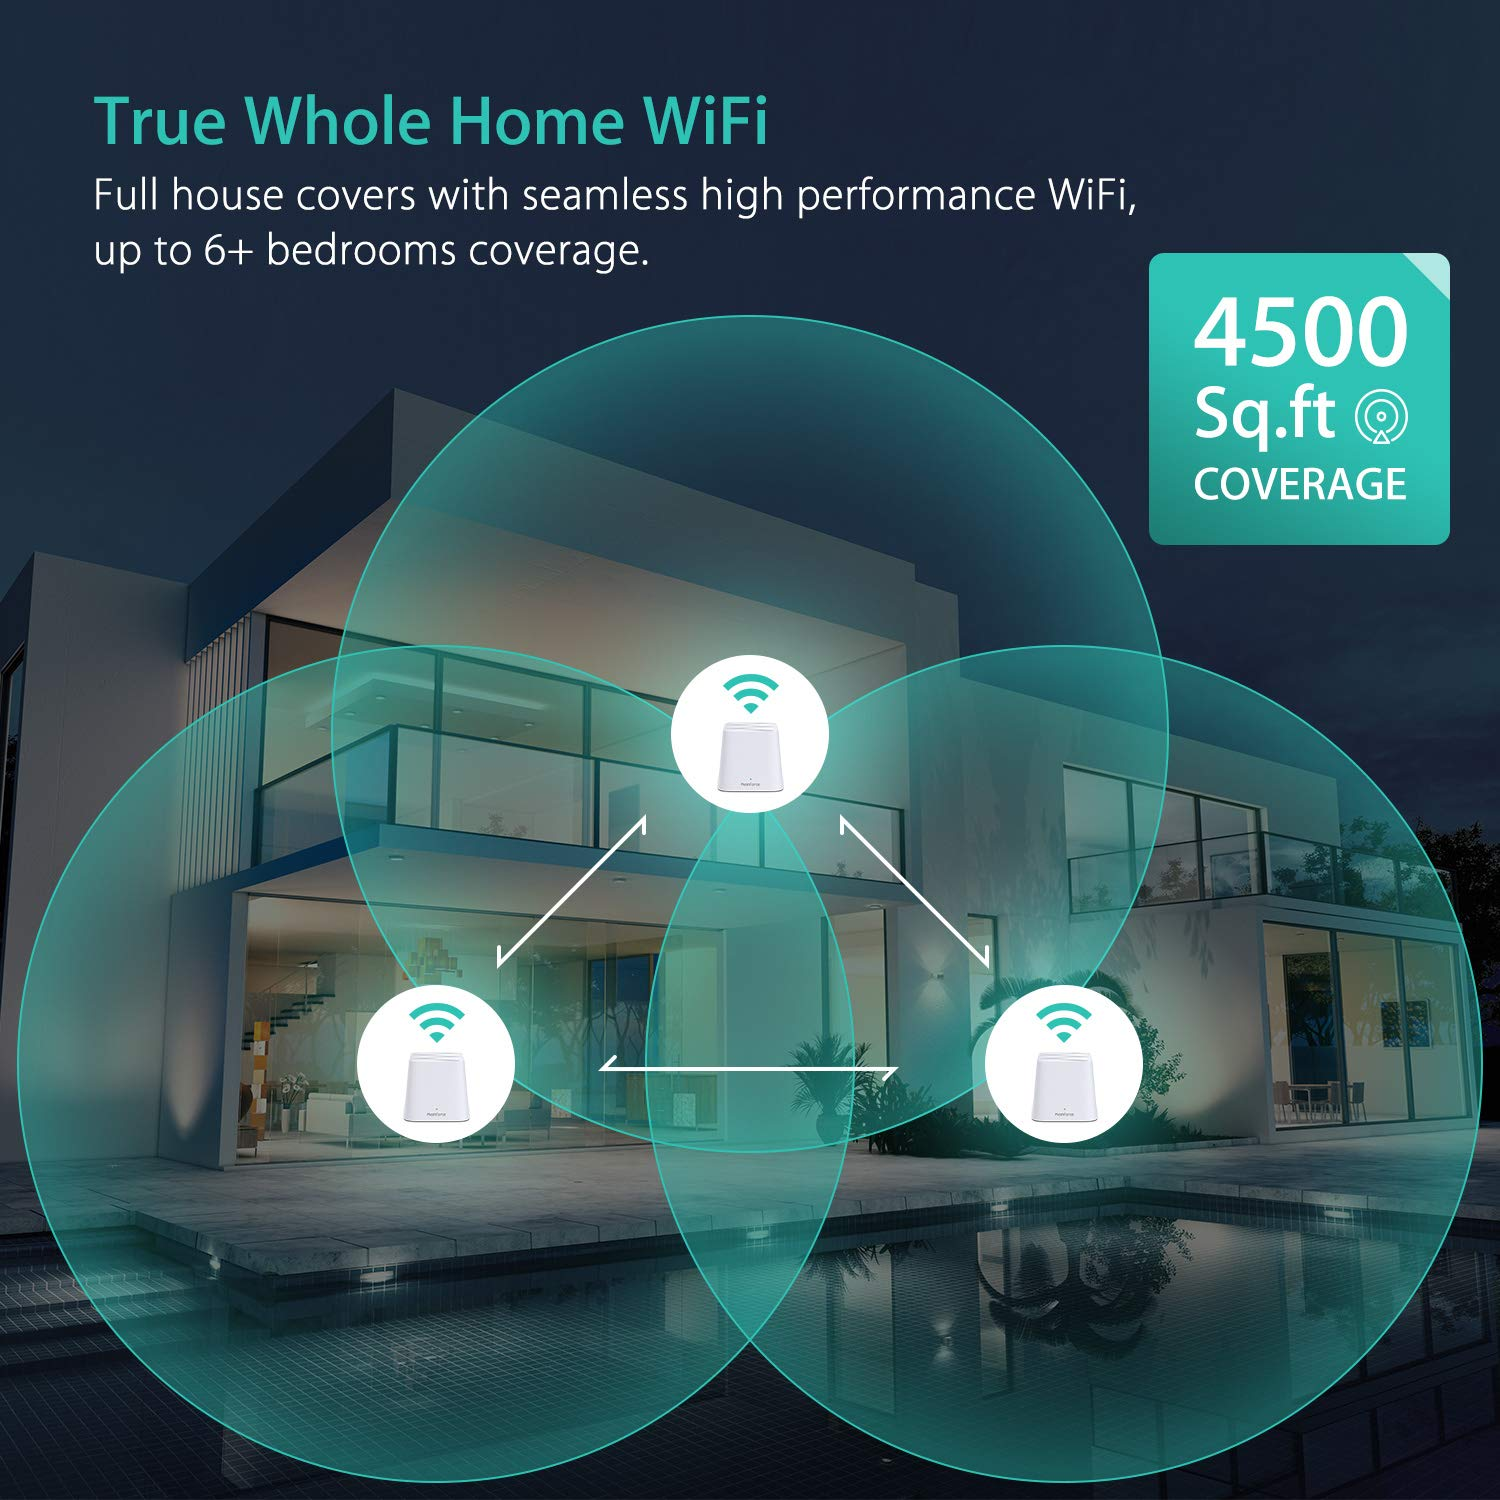 Meshforce Whole Home Mesh WiFi System (3 Pack), Dual Band AC1200 Router Replacement for Seamless and High Performance Wireless Coverage up to 6+ Bedrooms by Meshforce (Image #1)